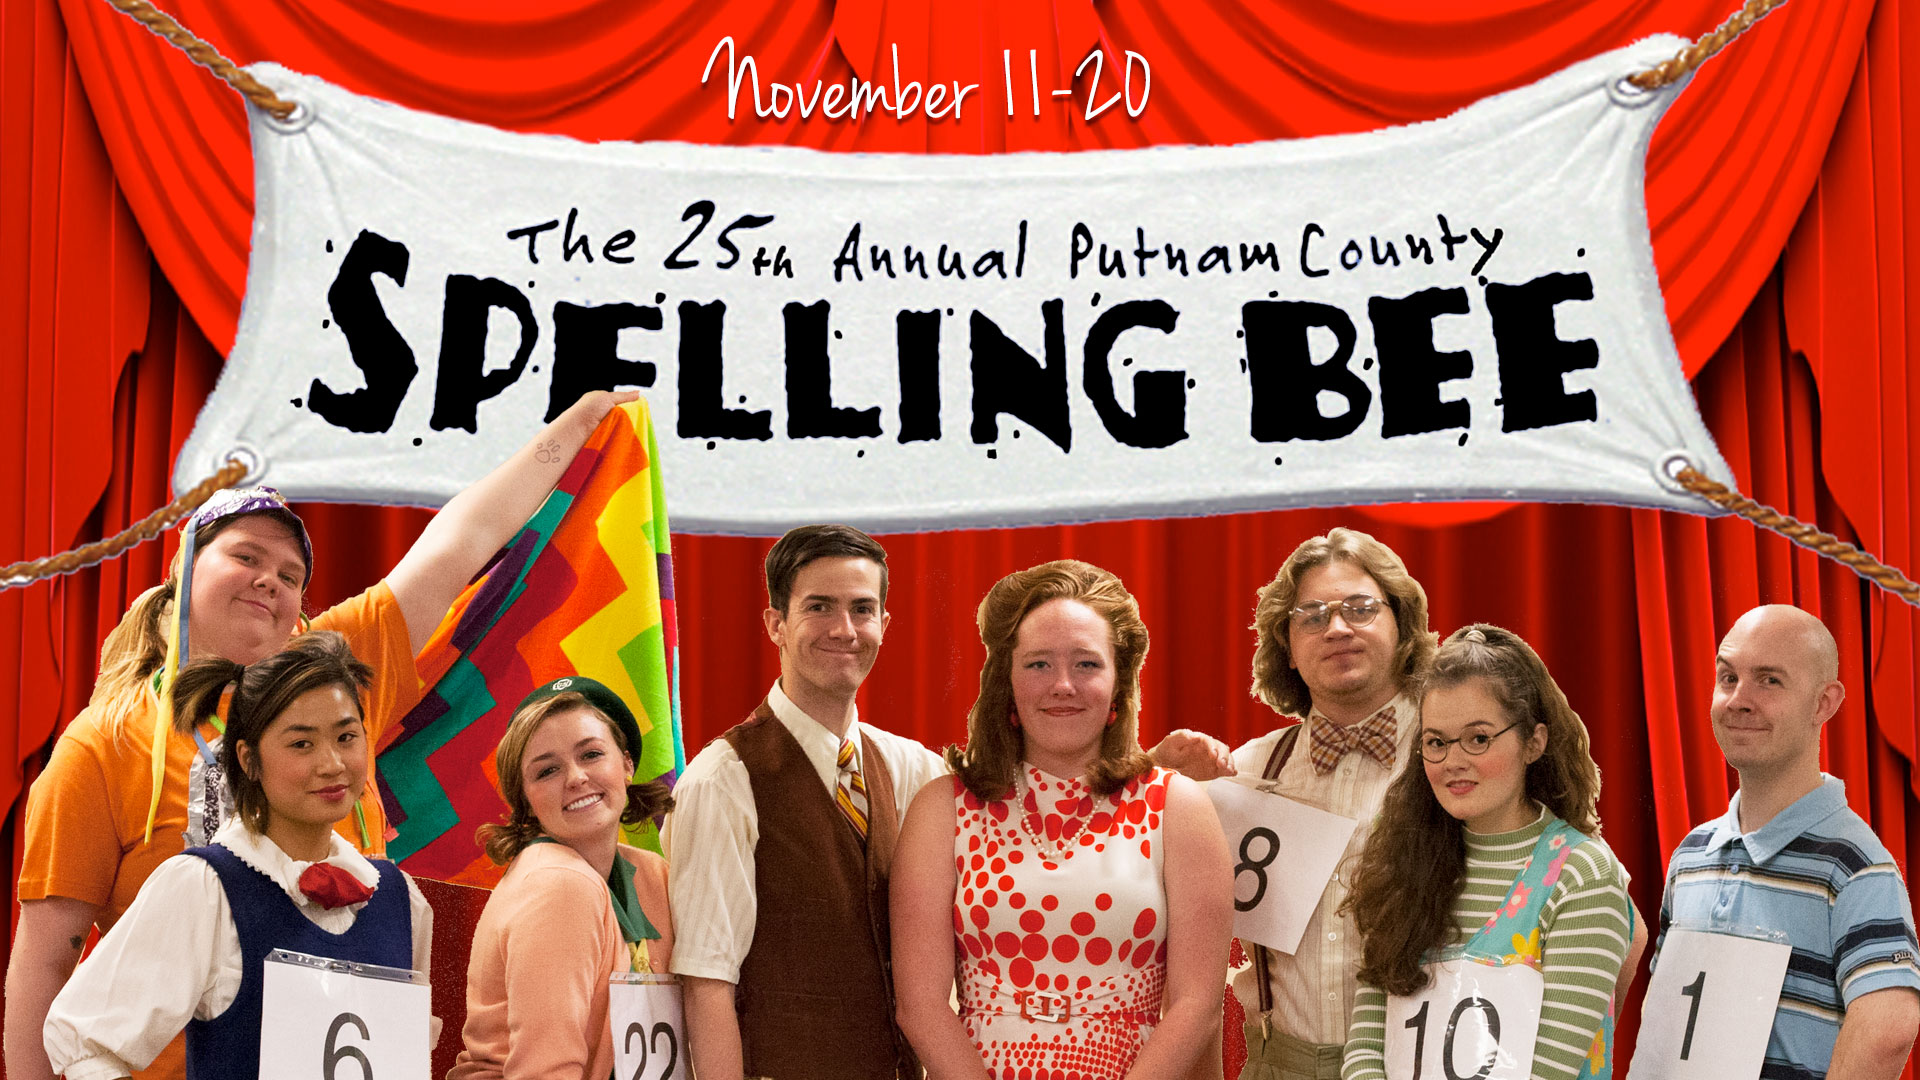 Graphic Featuring the Cast of The 25th Annual Putnam County Spelling Bee